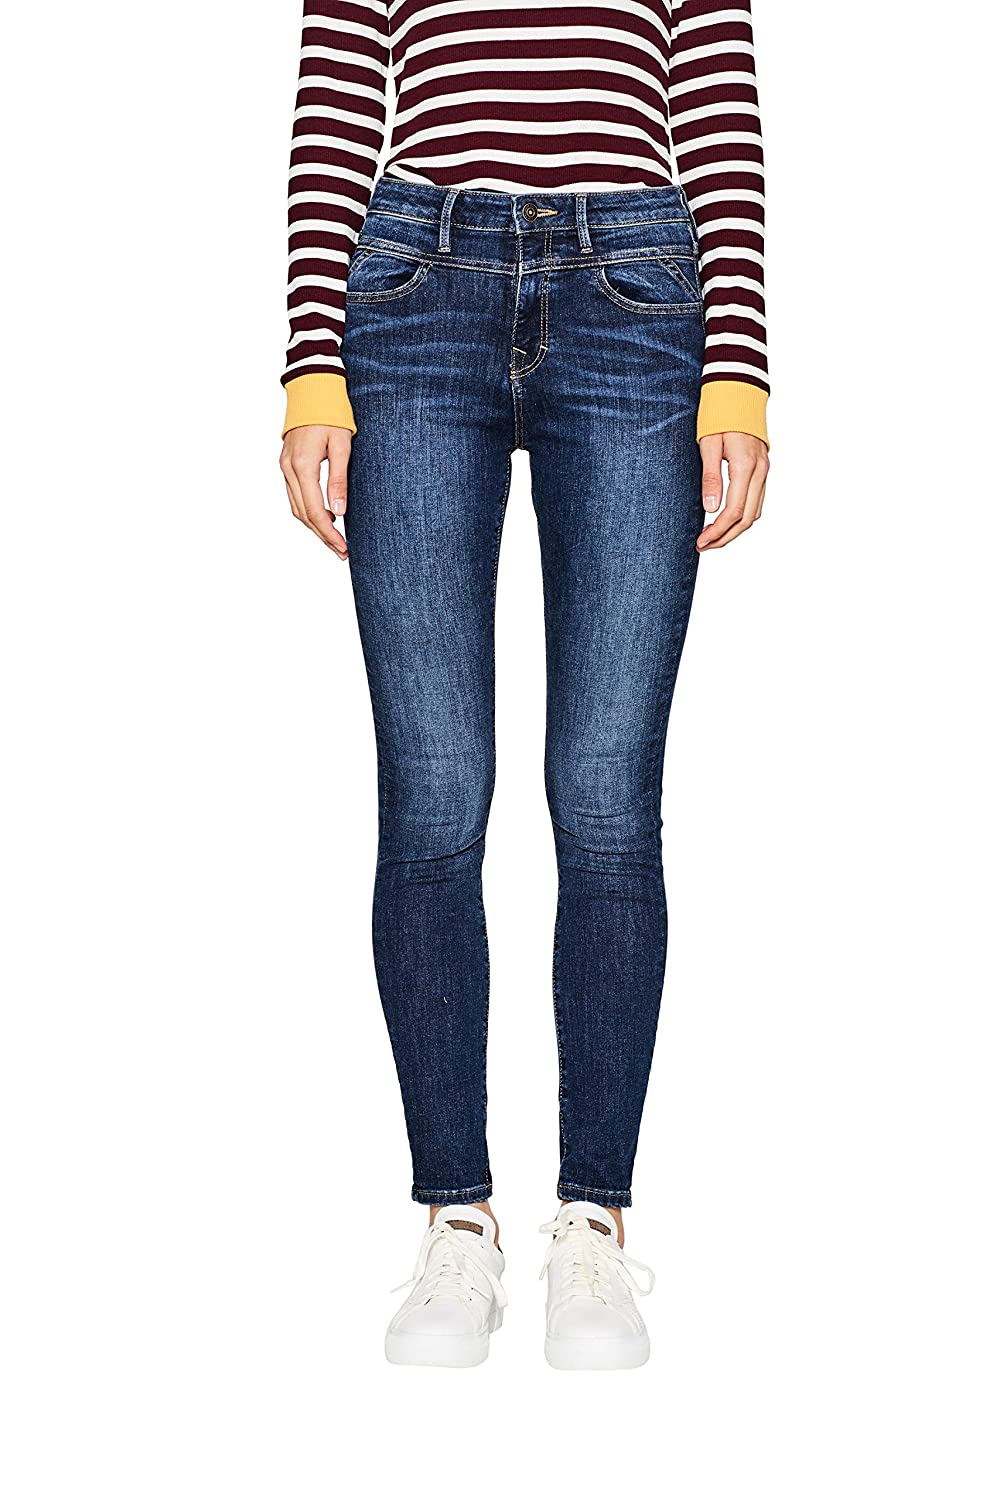 TALLA 26W / 32L. edc by Esprit Jeans para Mujer